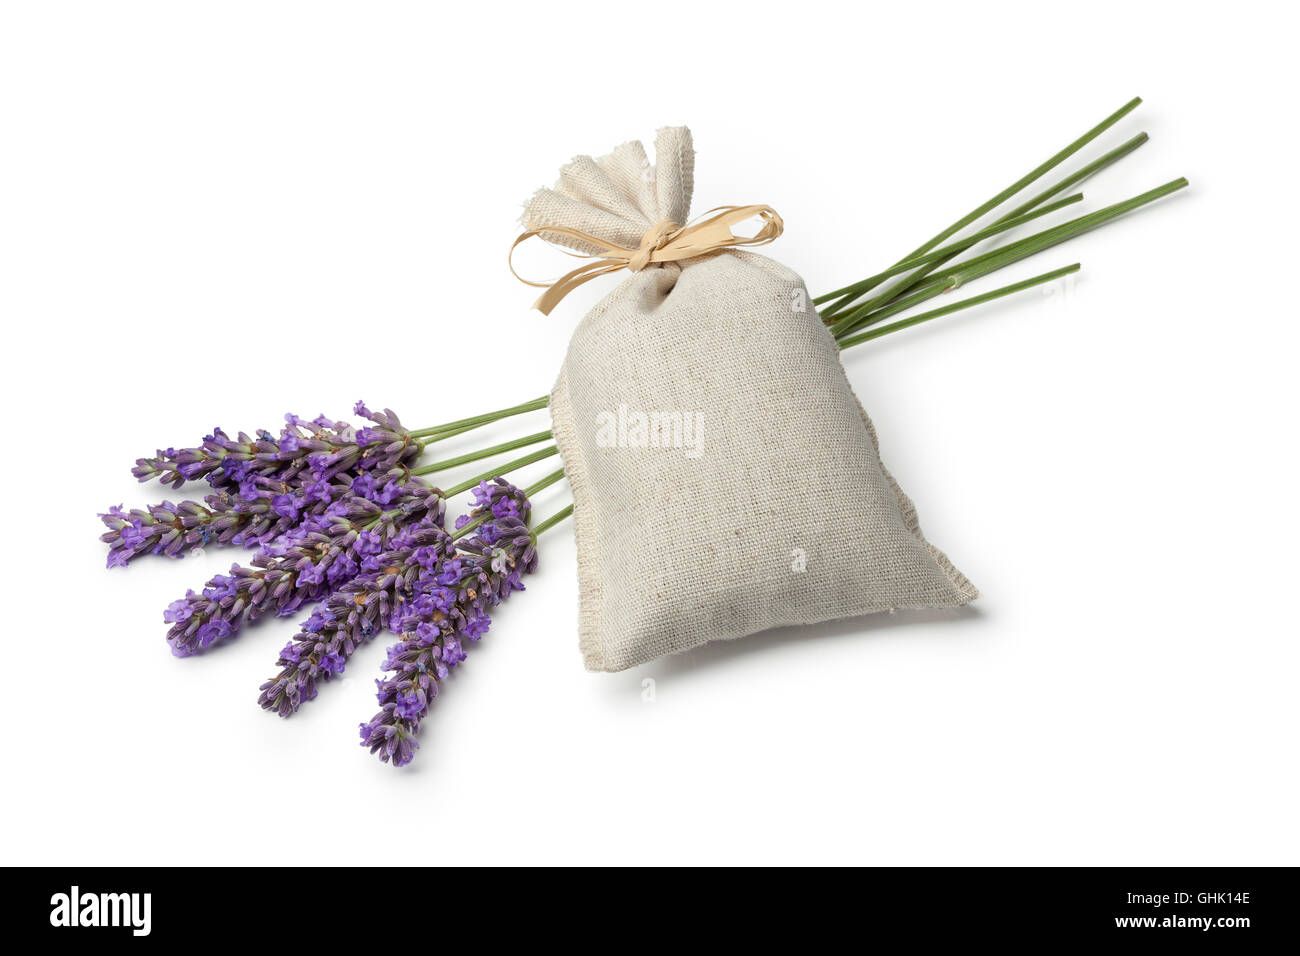 Linen sack with dried lavender flowers and fresh lavender on white background - Stock Image